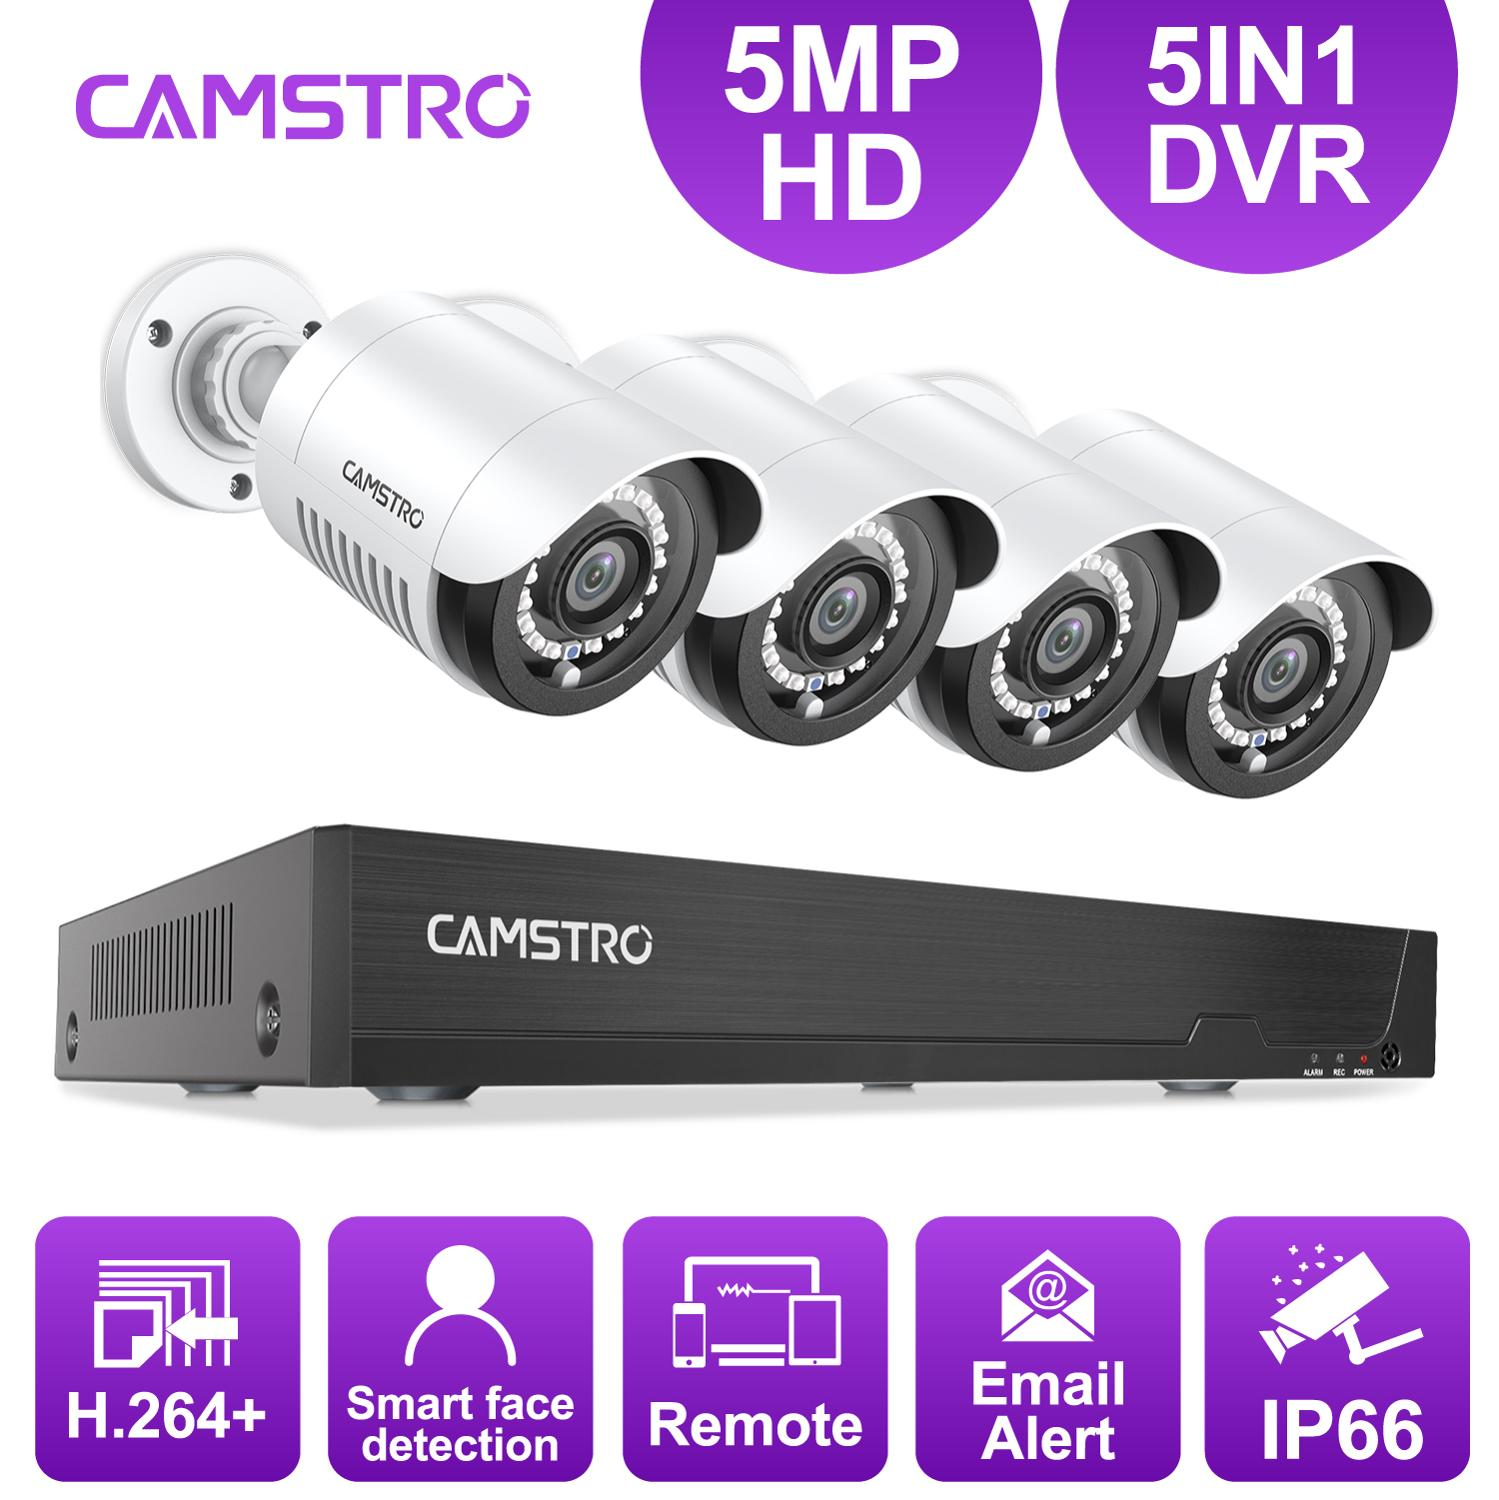 Camstro 4CH 5MP Security Camera System 5MP Lite 5IN1 H.264+ DVR With 4PCS 5MP HD Bullet Outdoor Waterproof Surveillance CCTV Kit